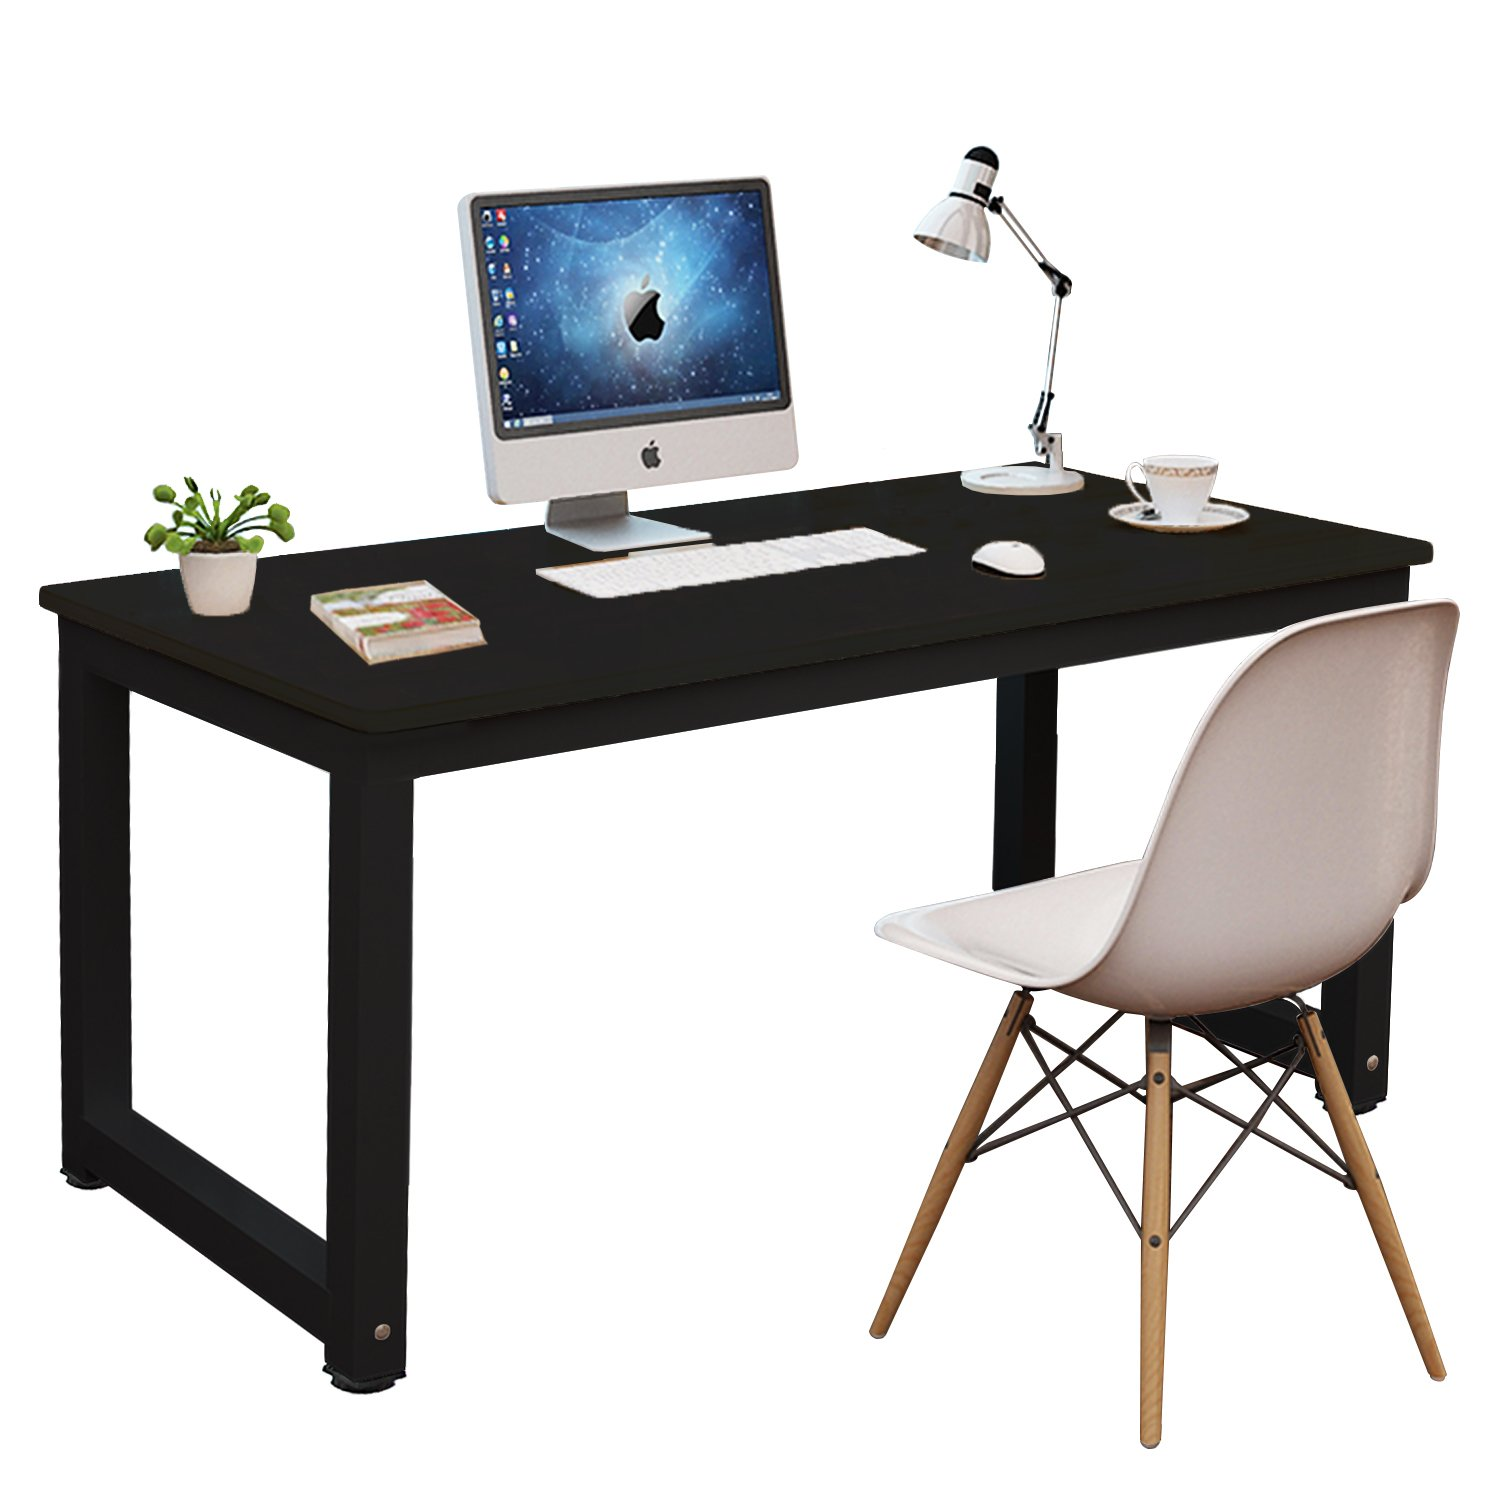 "The Brescian Professionals For Marvellous Metal Furniture: DL Furniture-Computer Desk Office Table 63""inches, Stable"